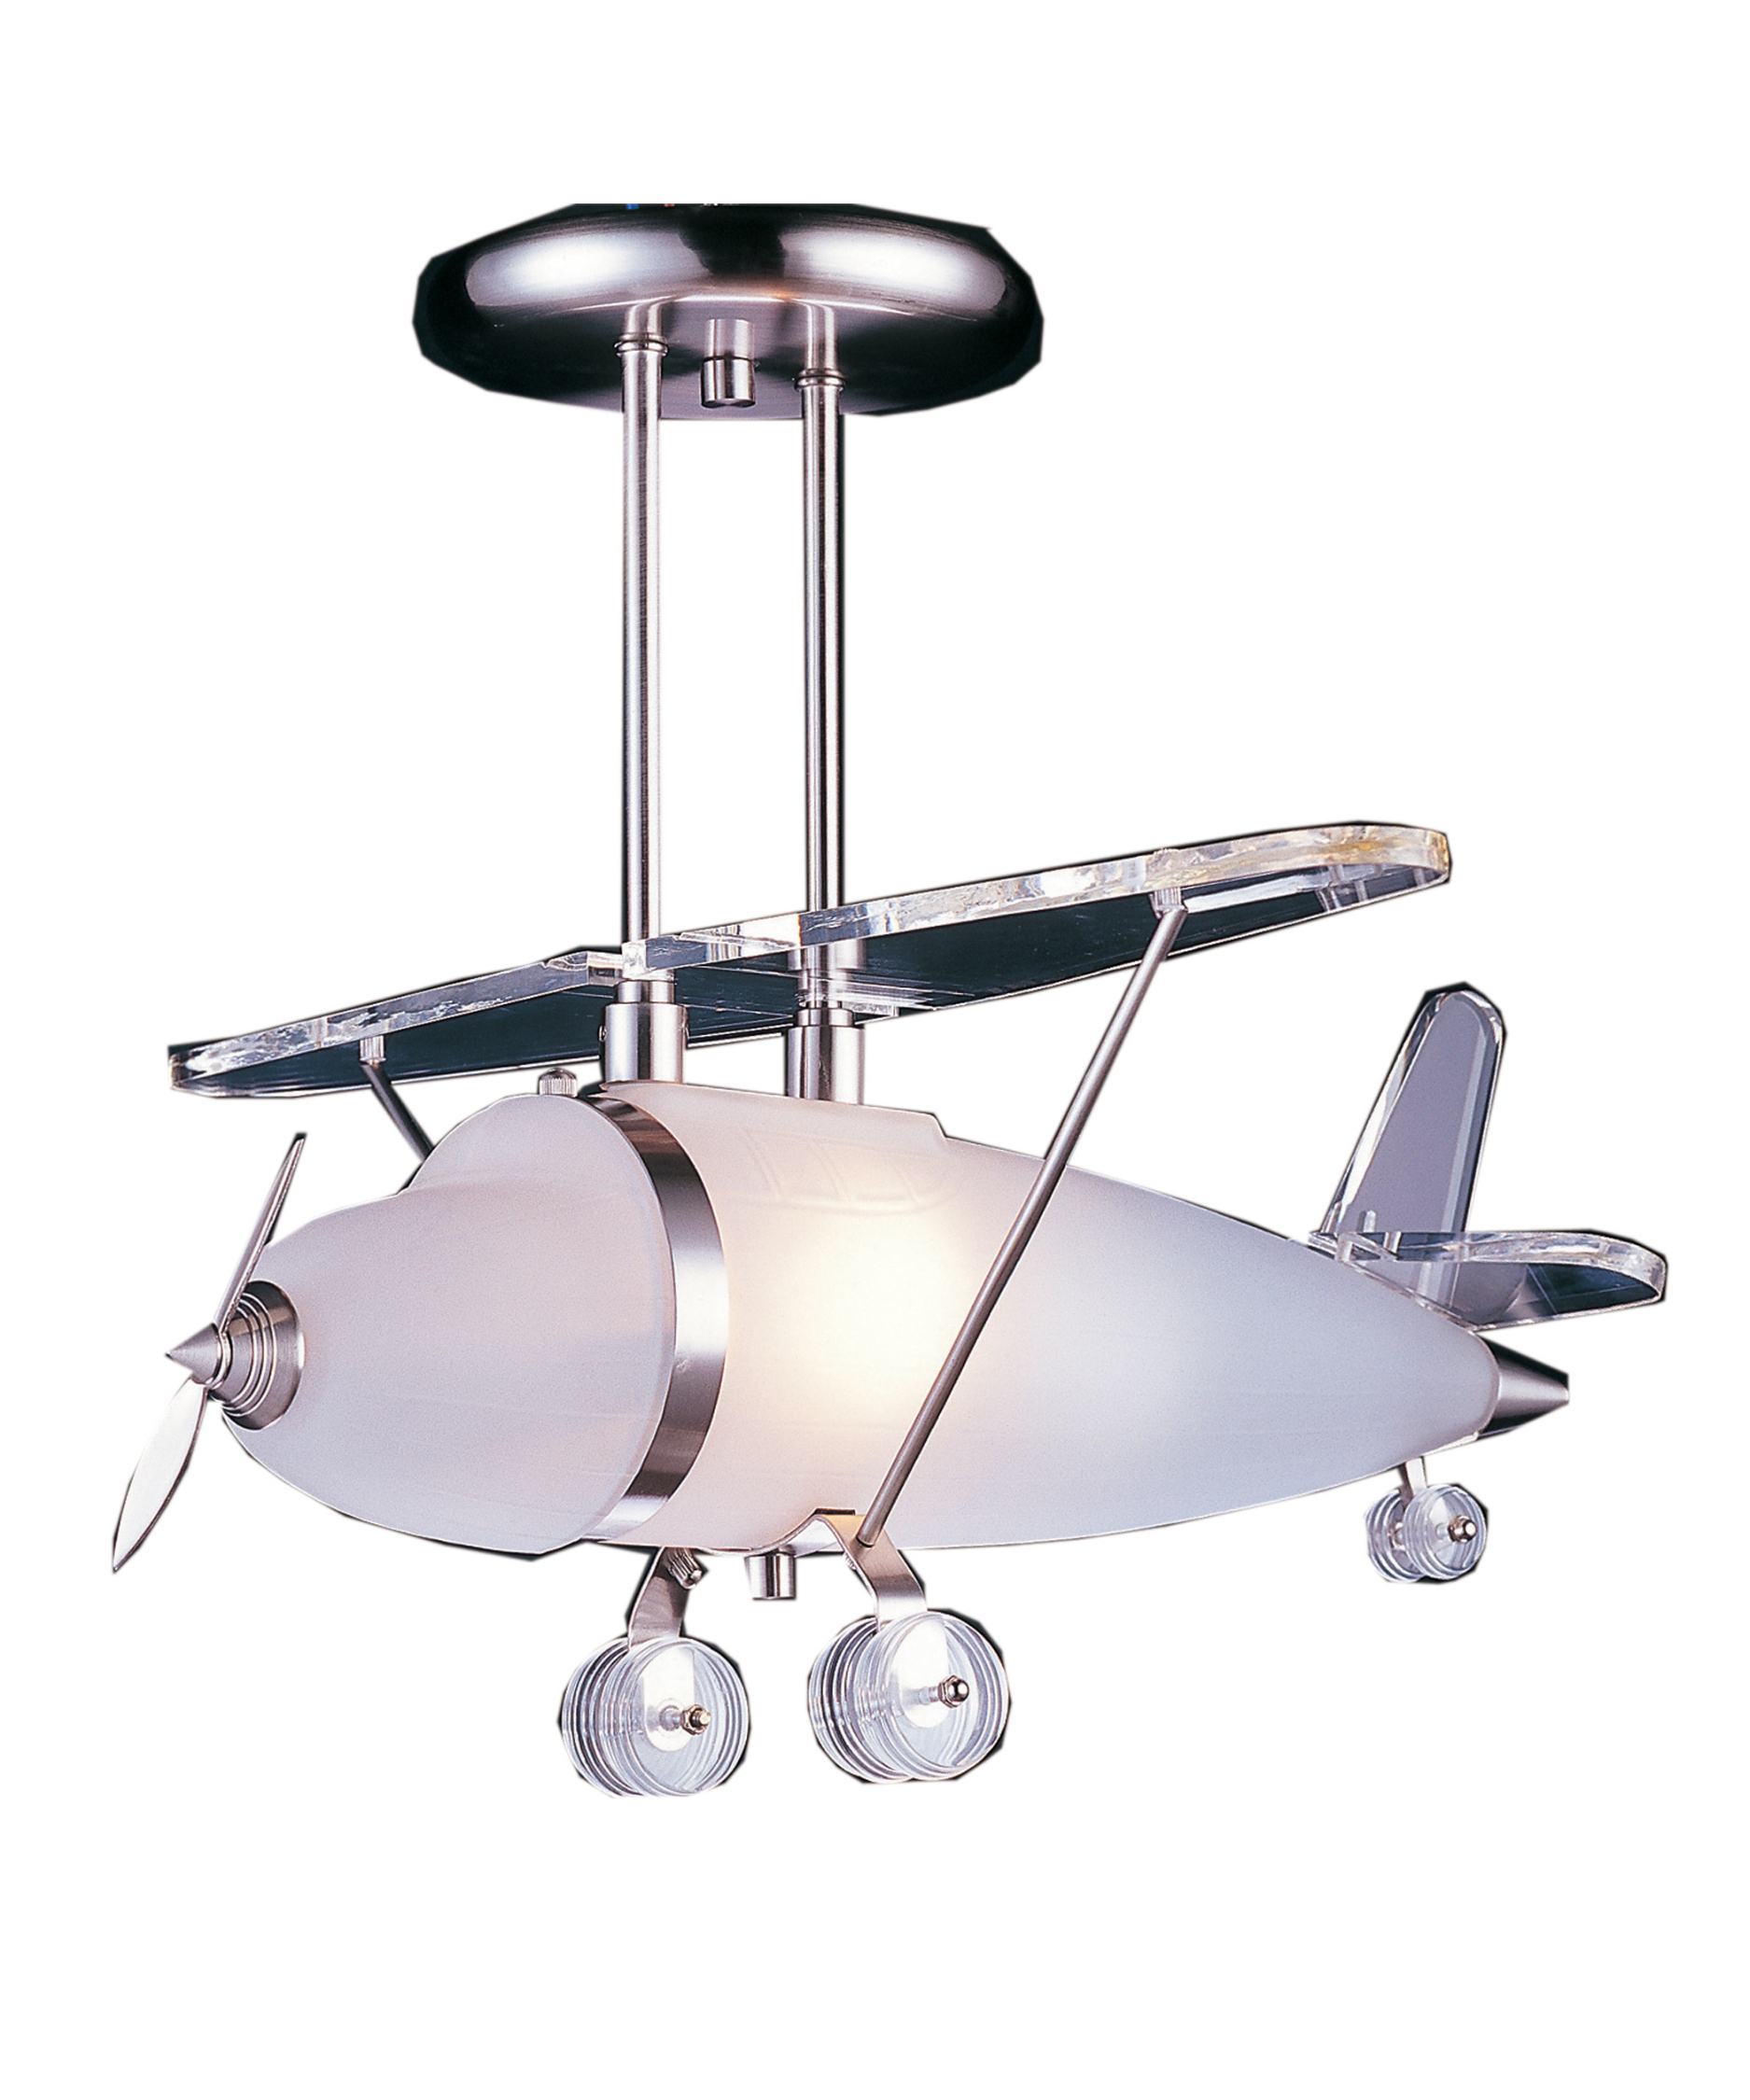 Airplane light fixture unique lighting fixture for the room homesfeed airplane theme pendant lamp with stainless steel frame aloadofball Gallery